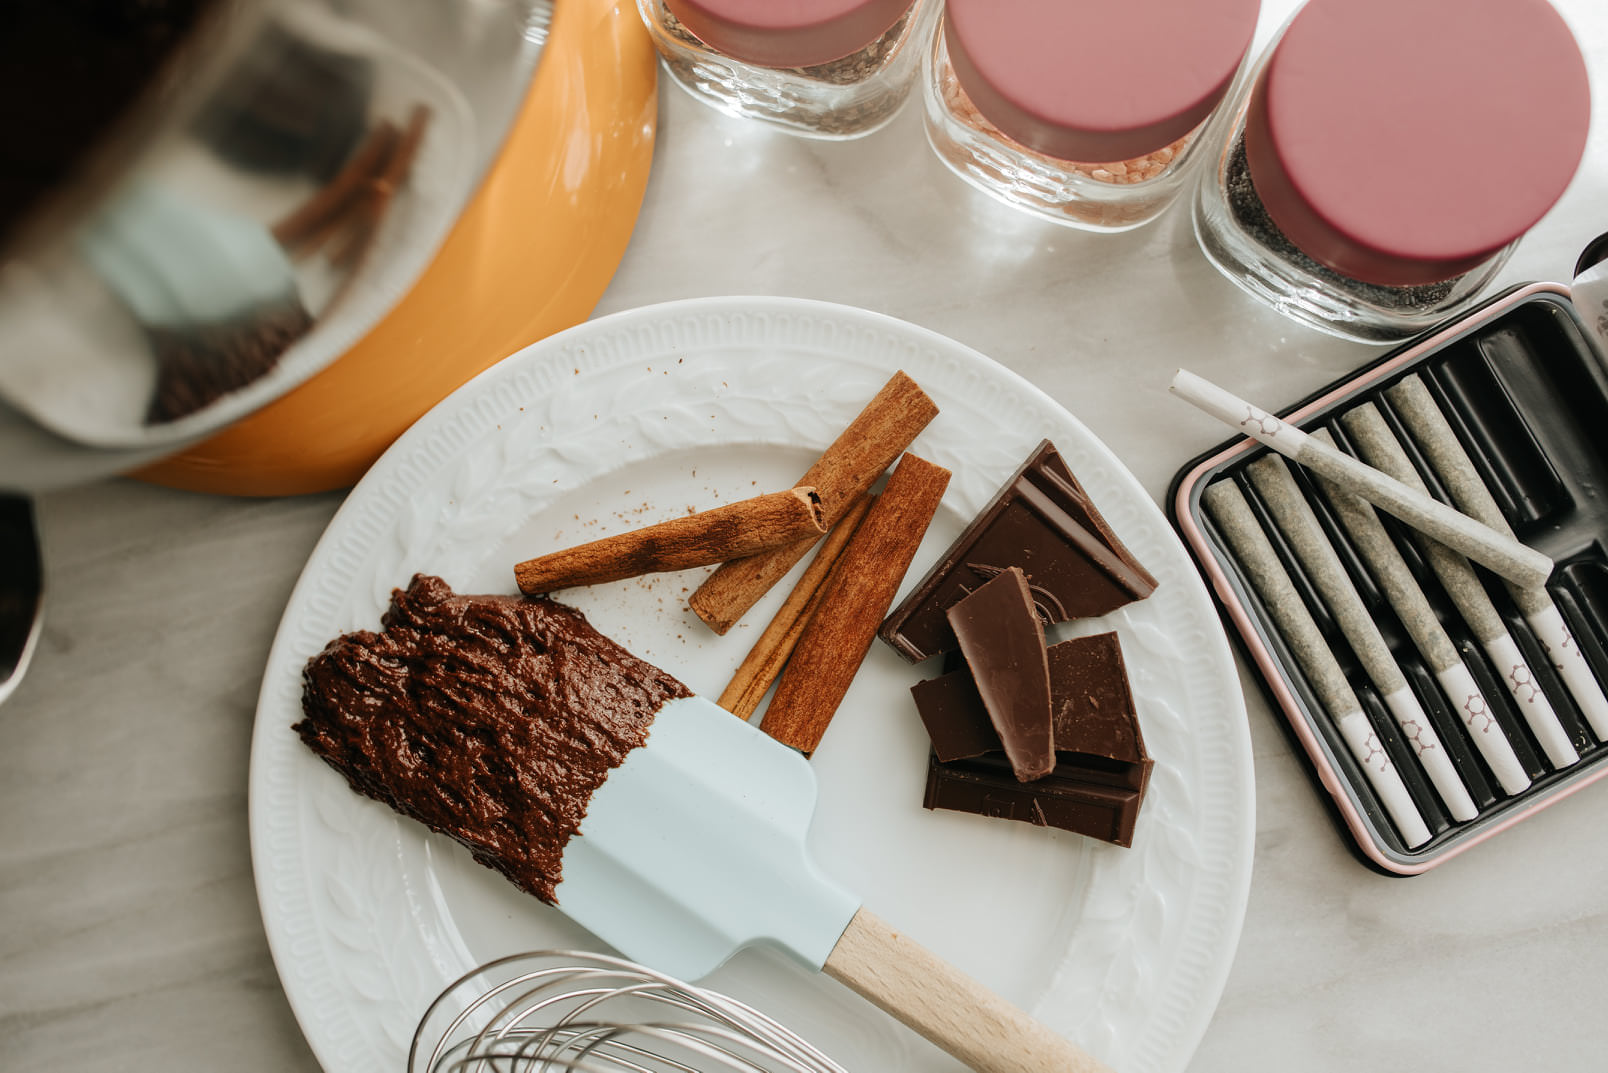 Cinnamon and chocolate pieces lie on a dish